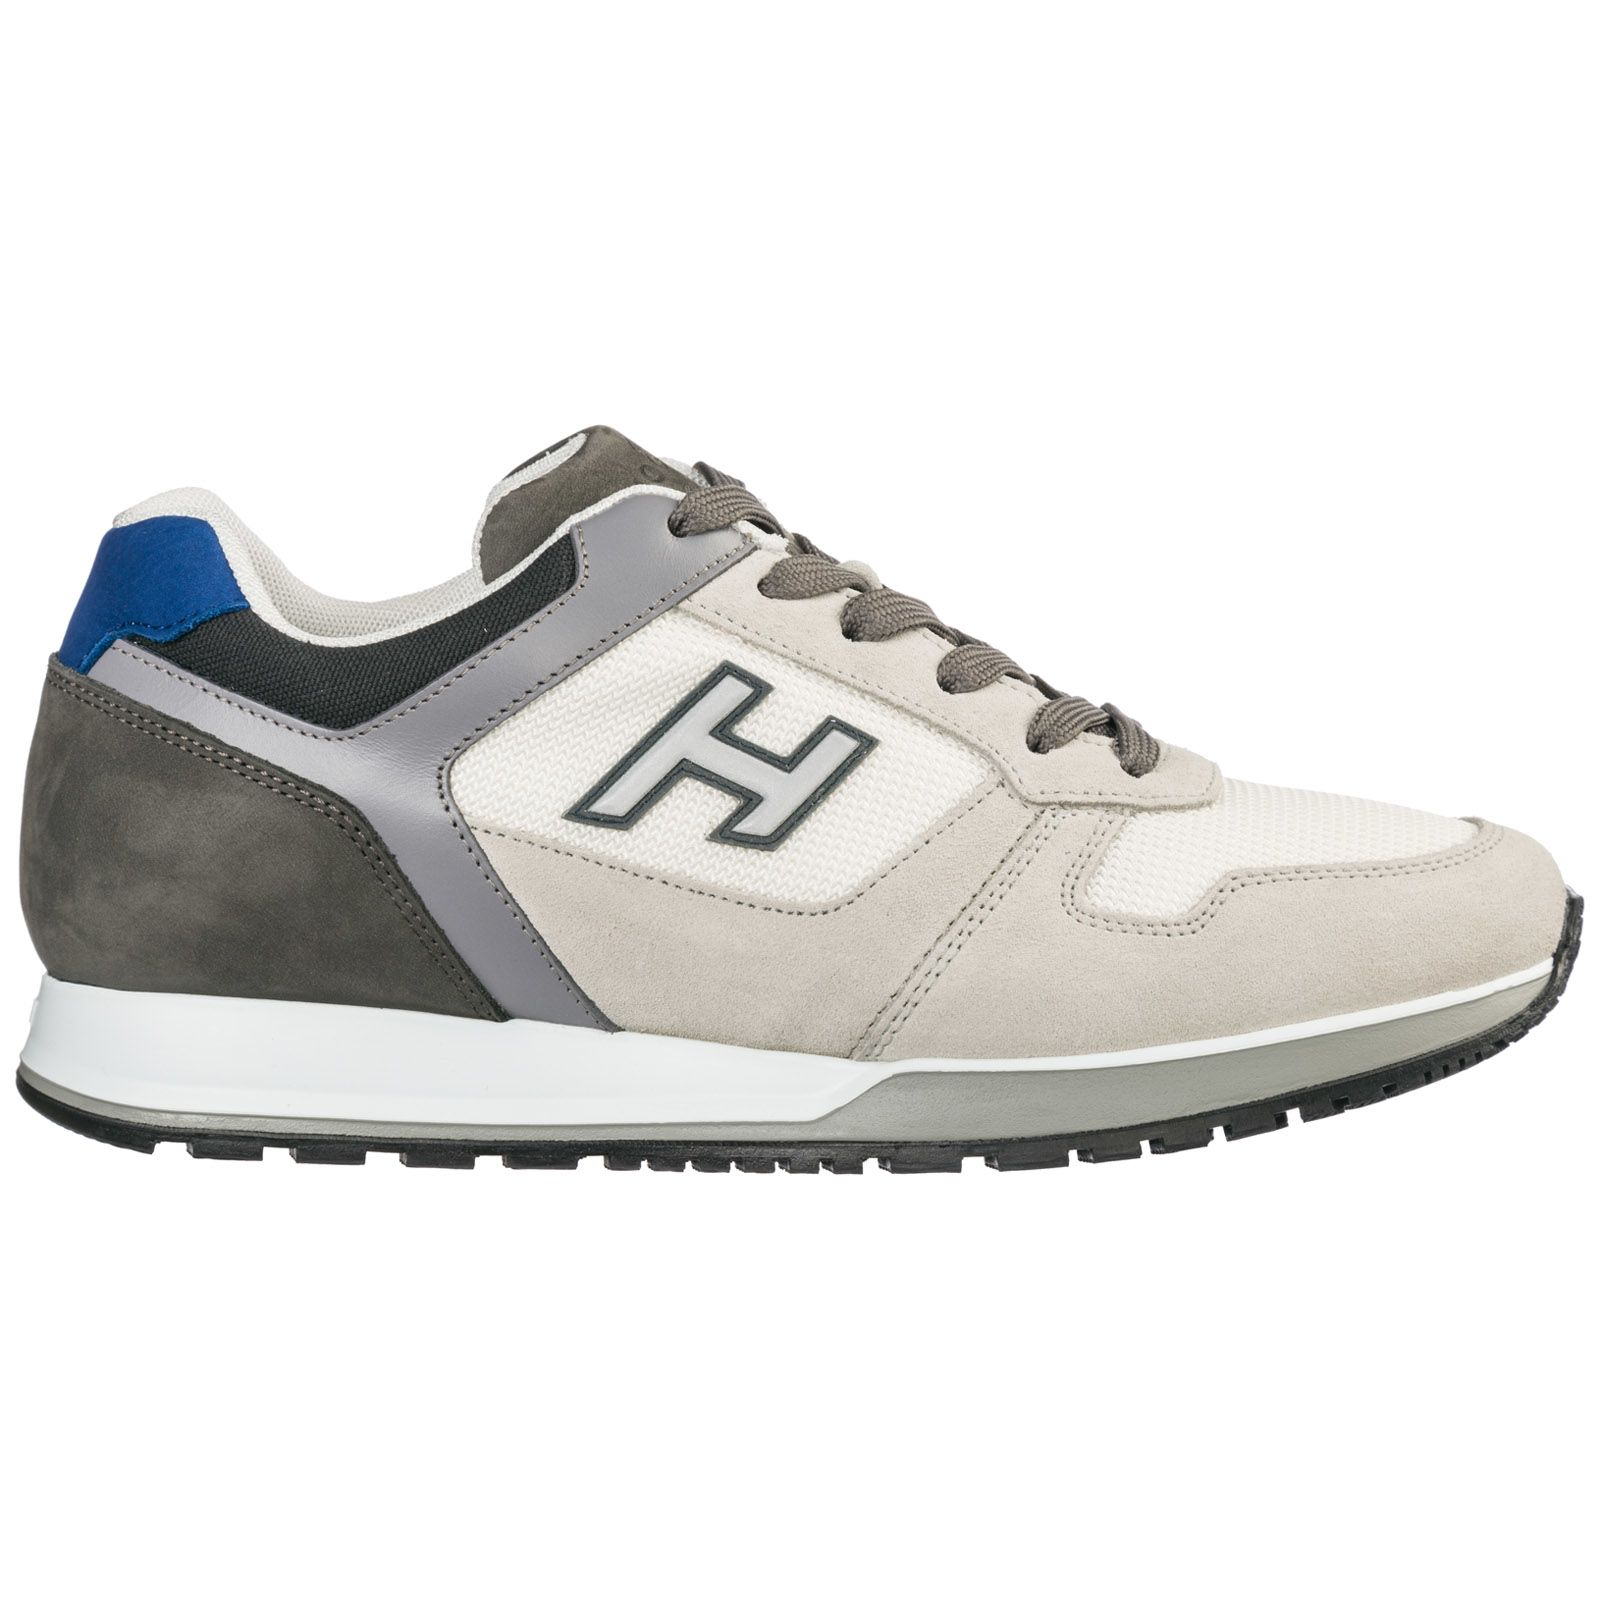 Hogan Shoes Hogan Shoes Suede Trainers Sneakers H321